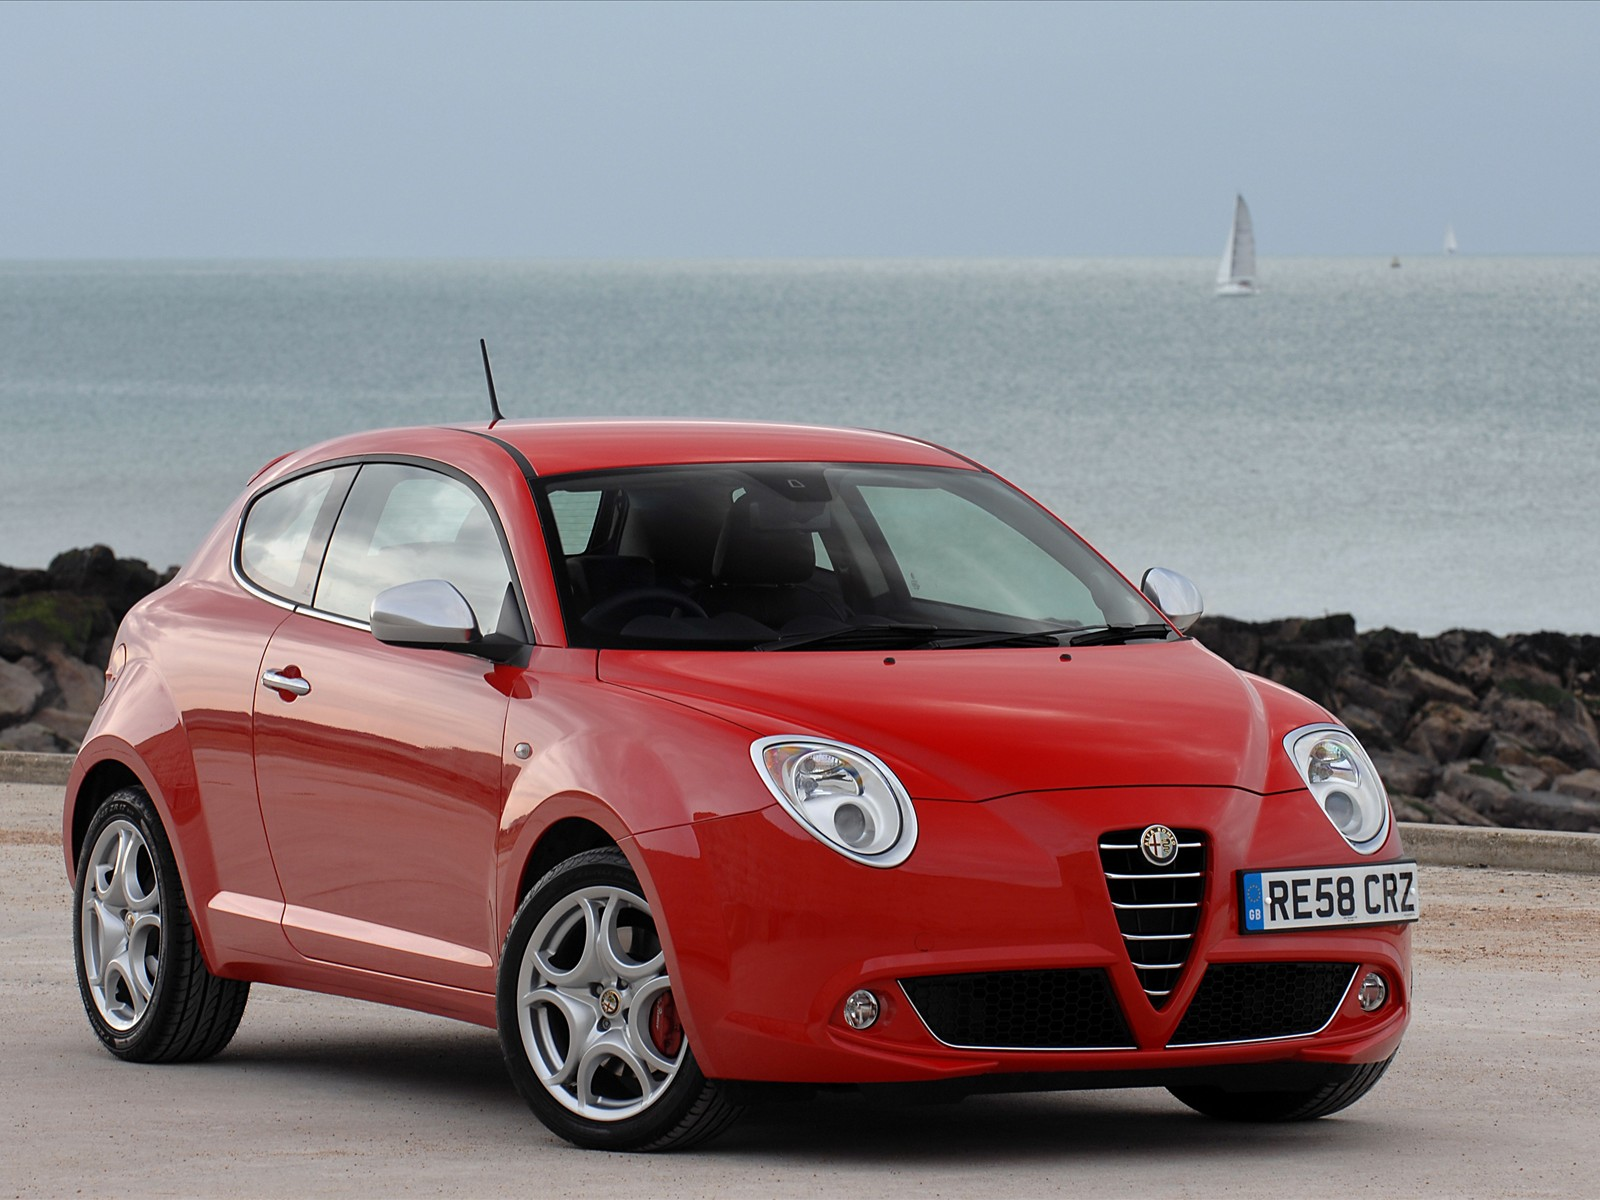 sport car alfa romeo mito uk version 2009. Black Bedroom Furniture Sets. Home Design Ideas